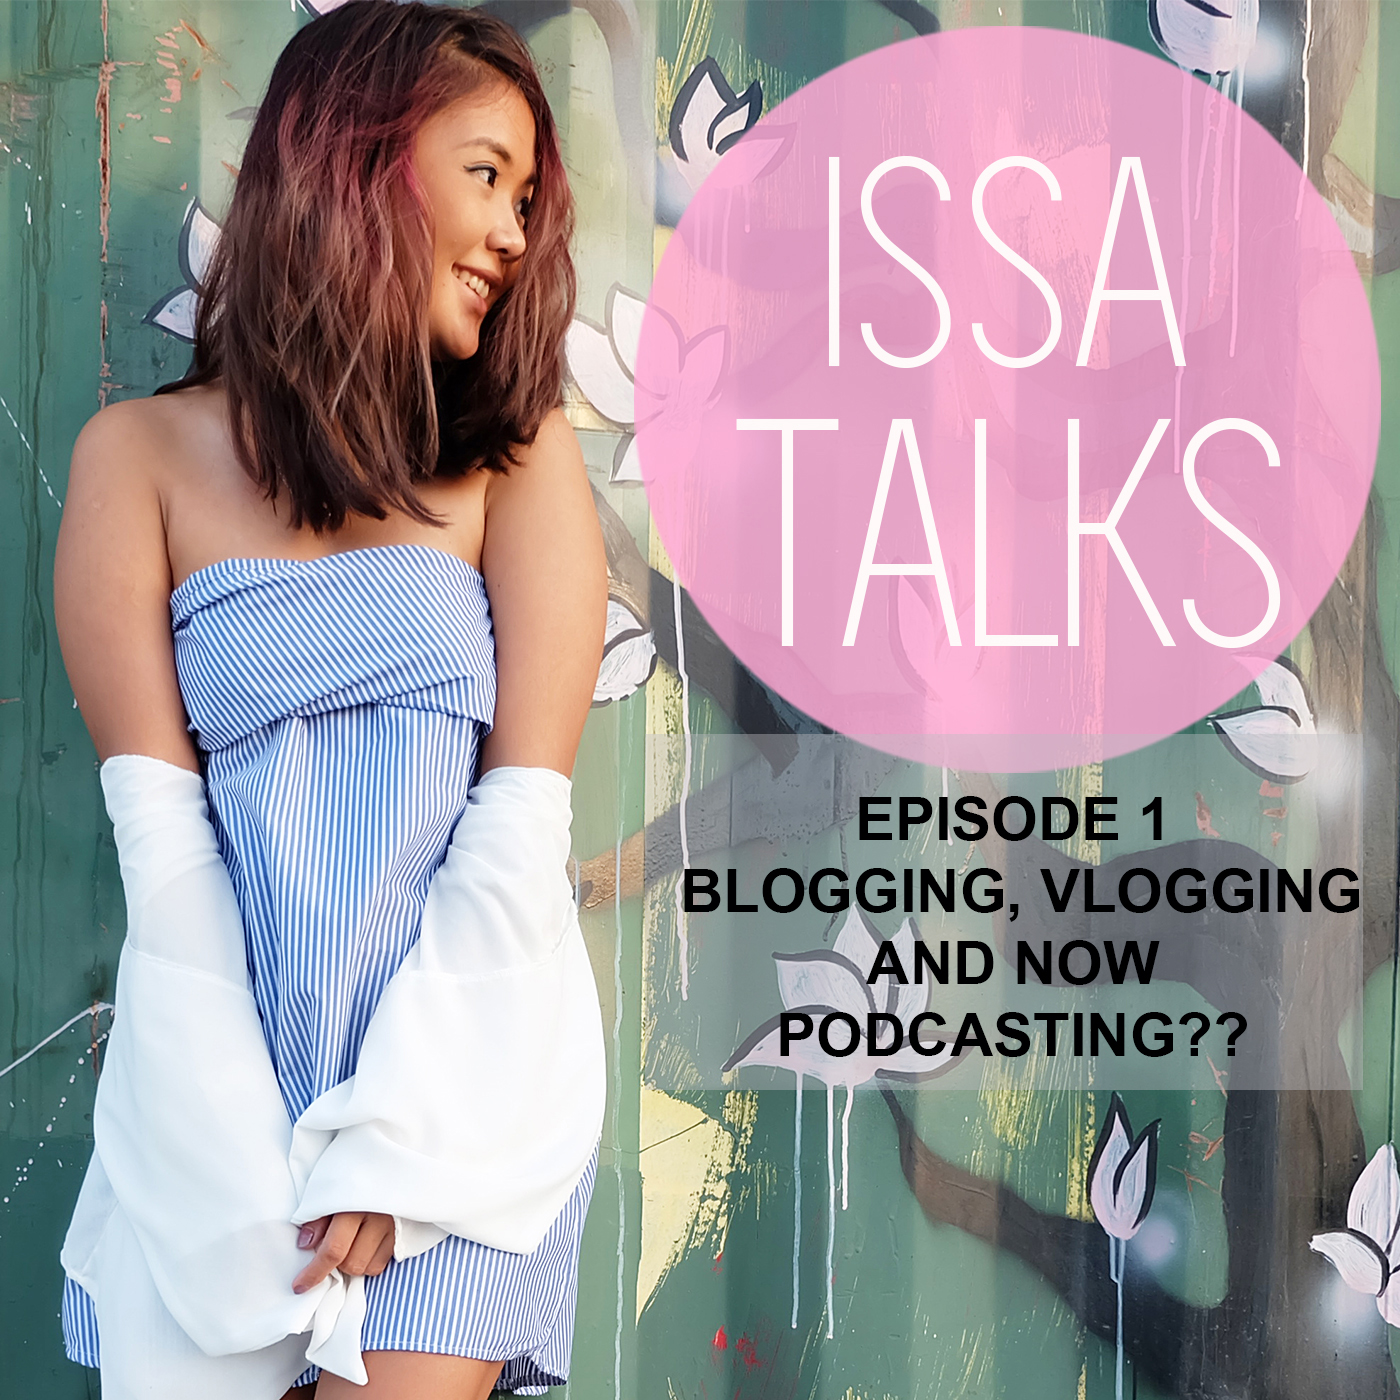 IssaTalks Ep.1: Blogging, Vlogging And Now Podcasting??